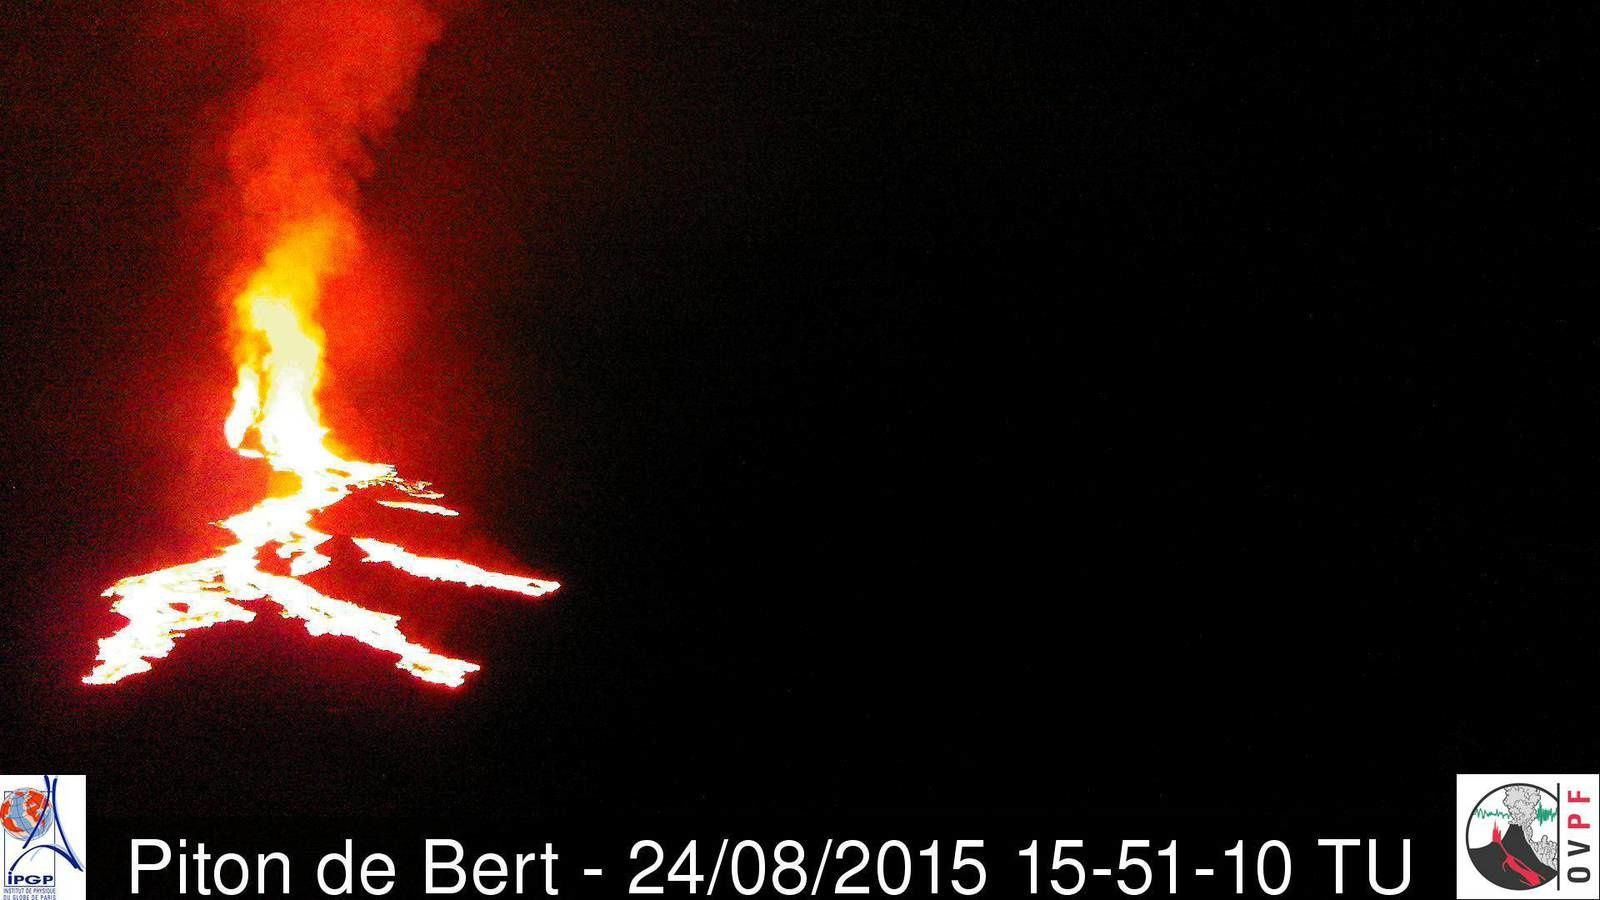 Evolution of lava flows and fountaining from Piton Bert camera, respectively at 3:13 p.m. - 3:27 p.m. - 3:51 p.m. GMT (local time + 4) - A click to zoom - Doc. OVPF webcam Piton Bert / OVPF